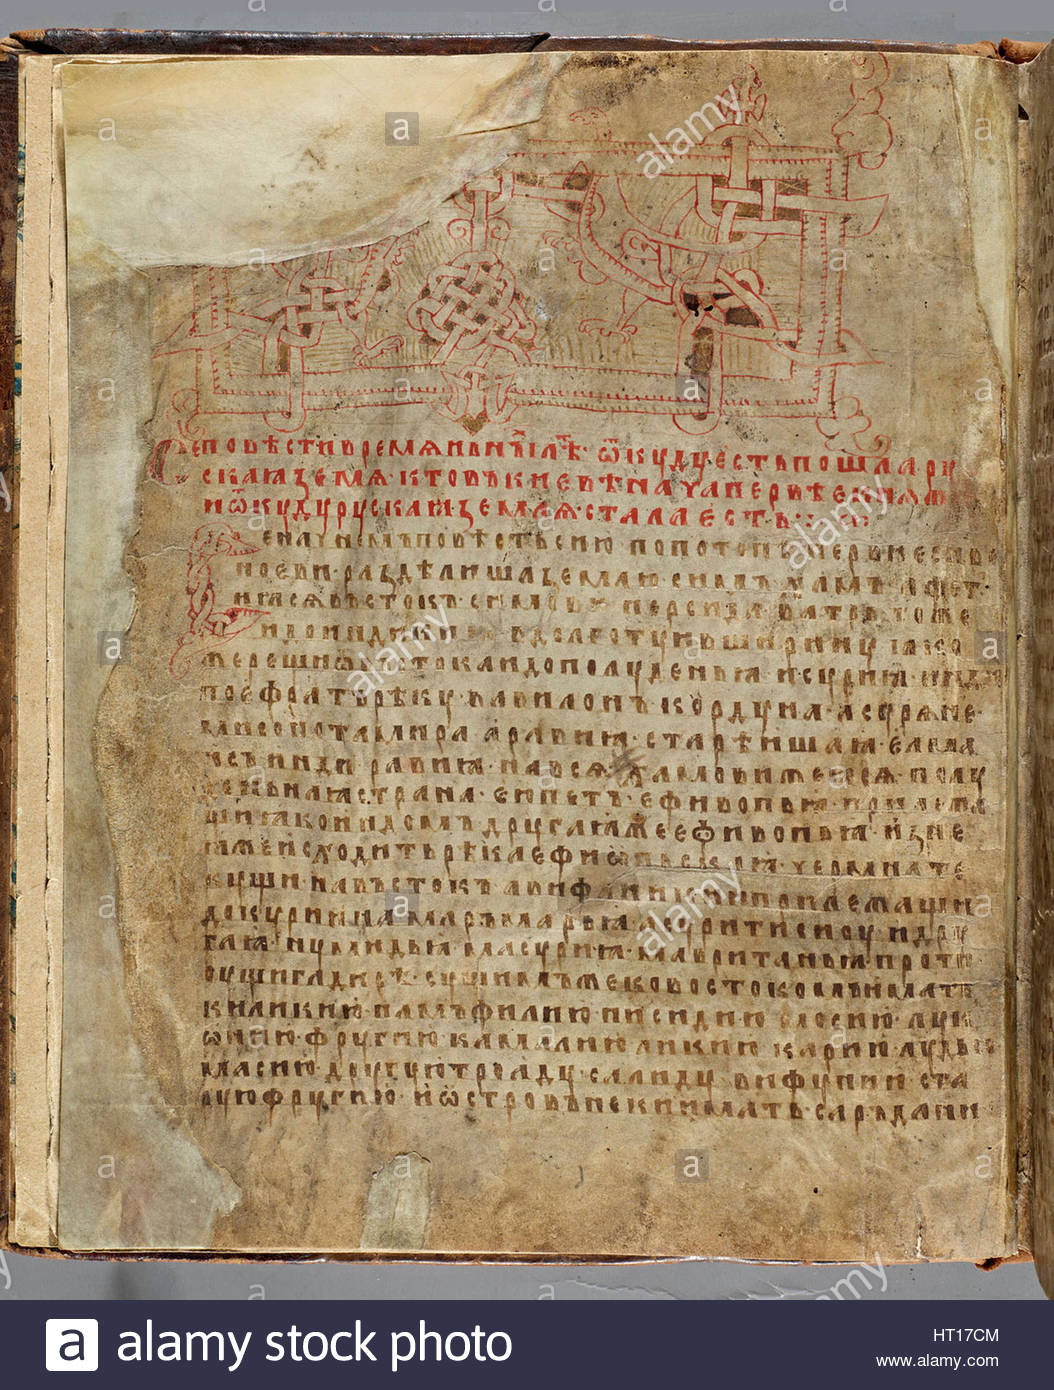 Laurentian Codex, 1377. Artista: documento histórico Imagen De Stock